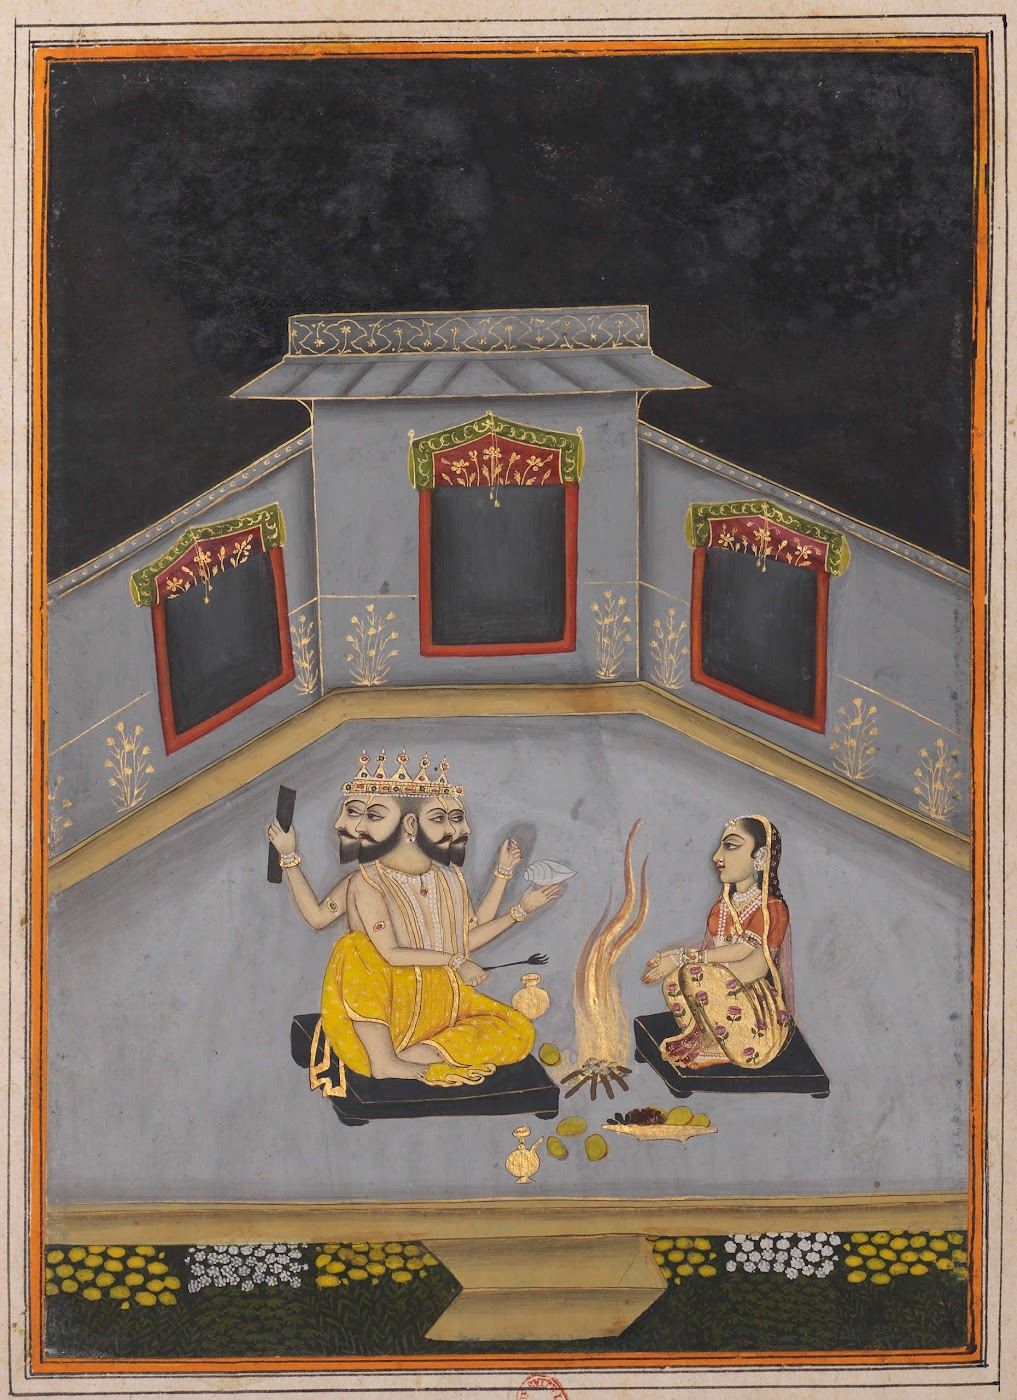 Lady Worshipping God Brahma - Rajput Ragamala Painting from a Manuscript, Circa 1800